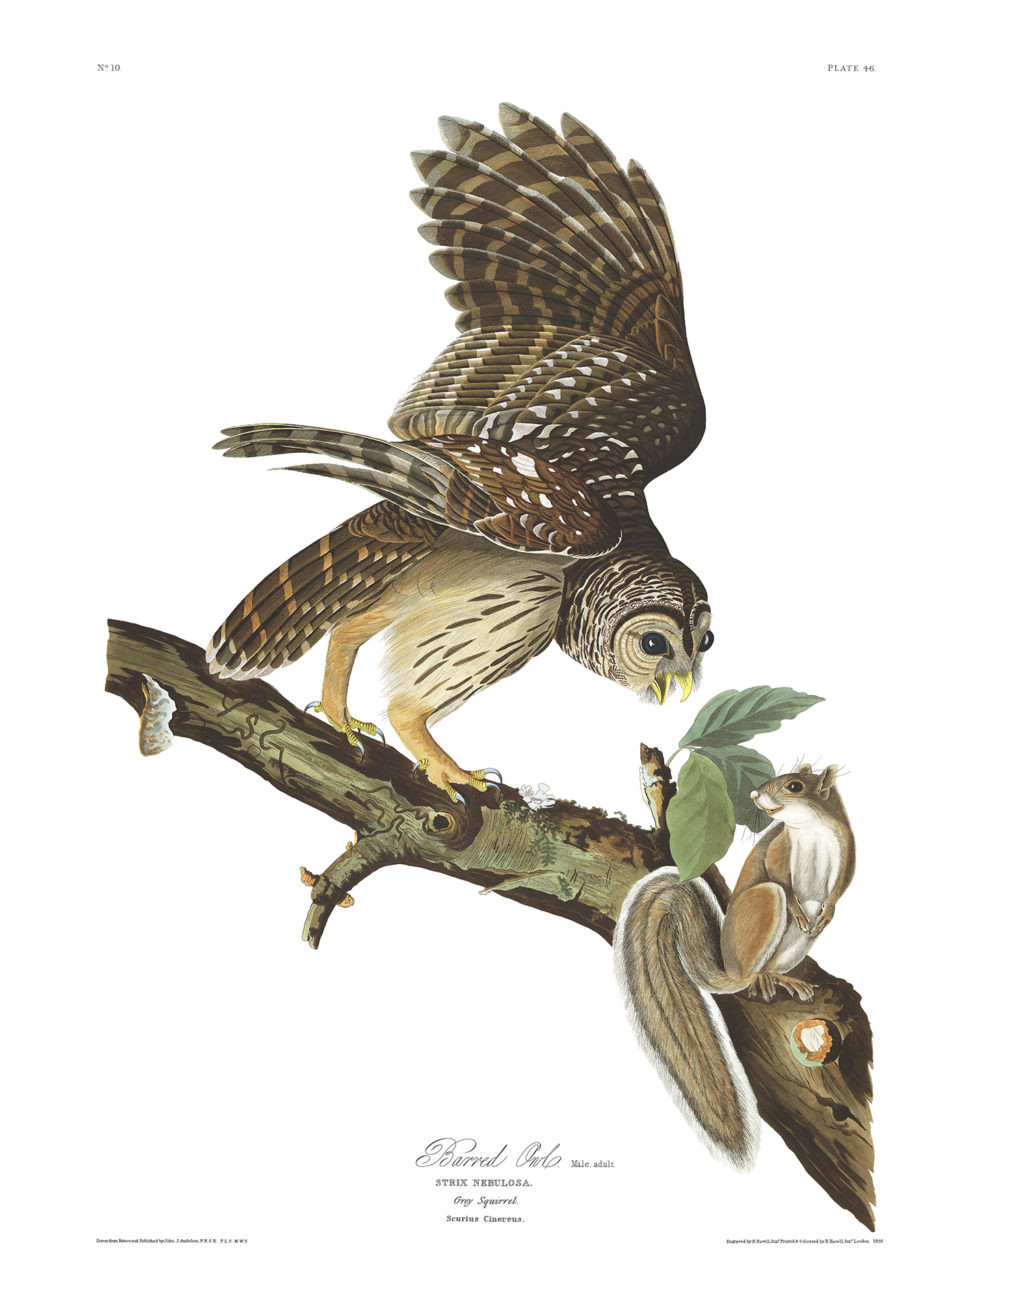 Plate 46 - Barred Owl